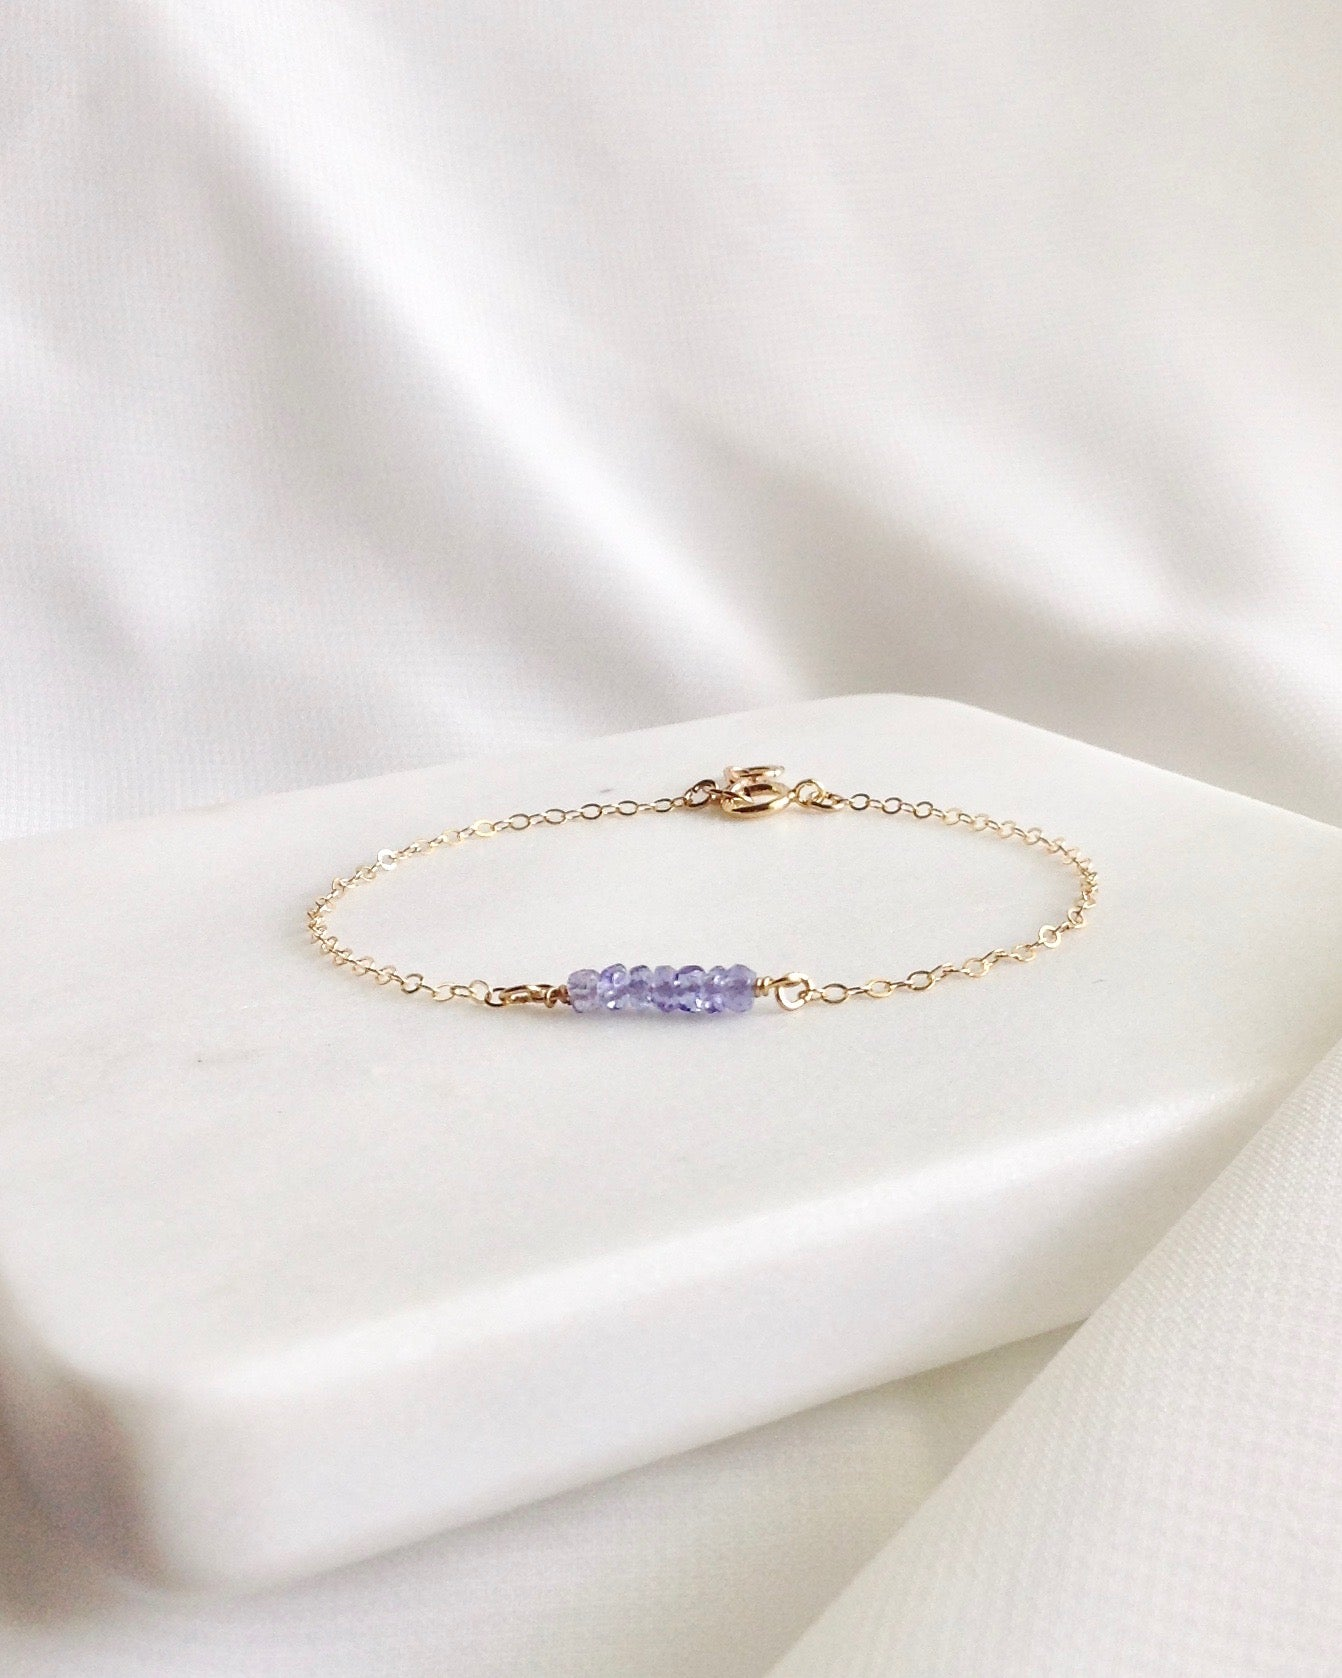 Tanzanite Dainty Gemstone Bracelet In Gold Filled or Sterling Silver | IB Jewelry